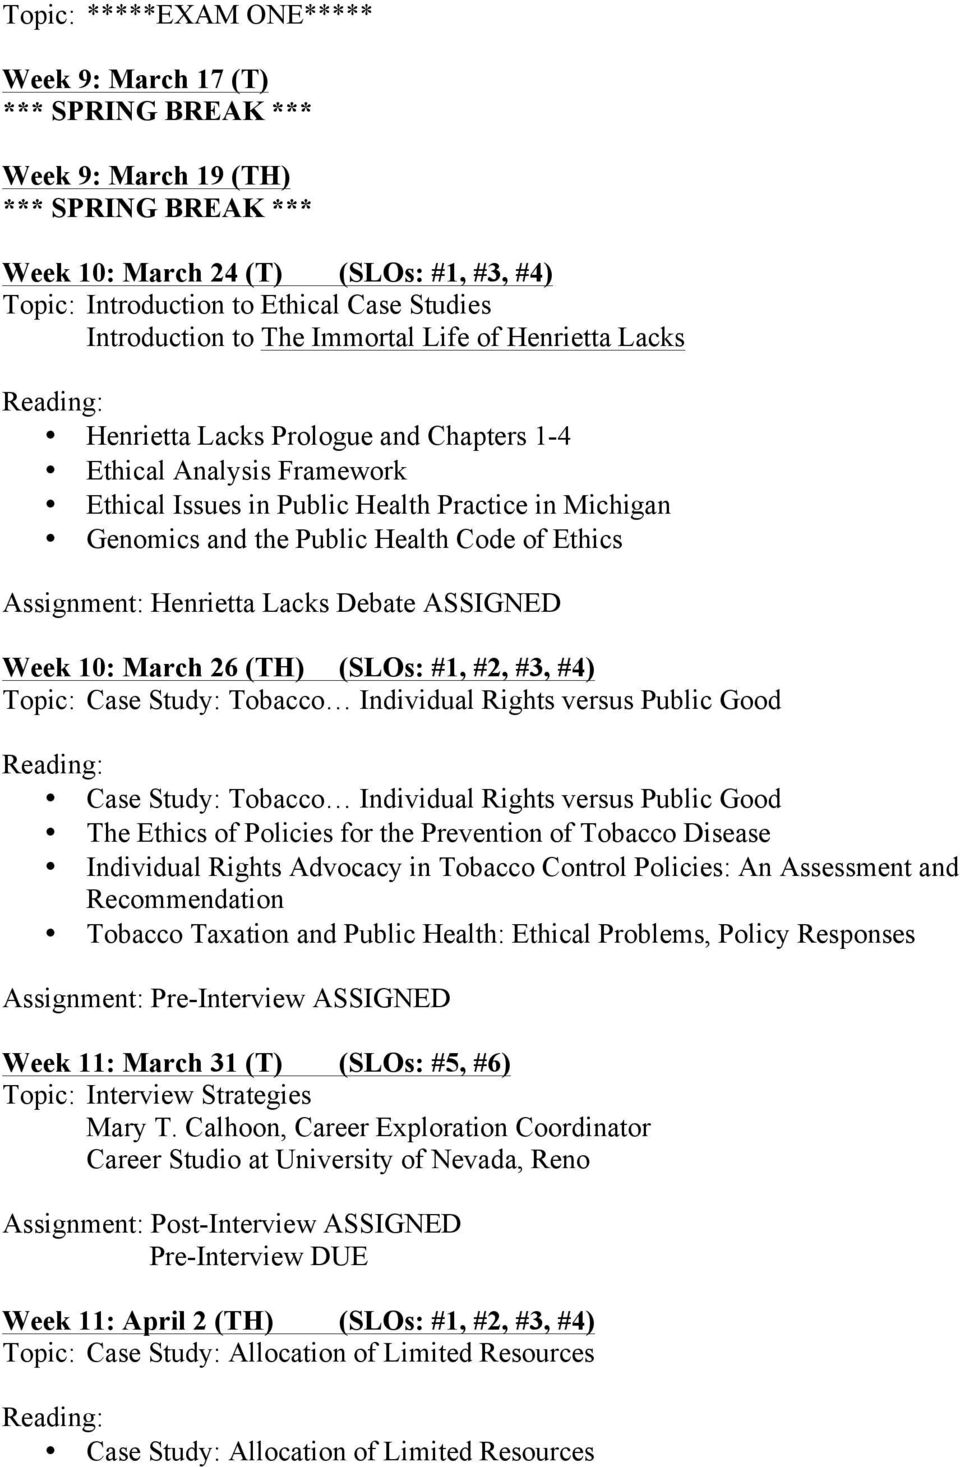 Health Code of Ethics Assignment: Henrietta Lacks Debate ASSIGNED Week 10: March 26 (TH) (SLOs: #1, #2, #3, #4) Topic: Case Study: Tobacco Individual Rights versus Public Good Case Study: Tobacco